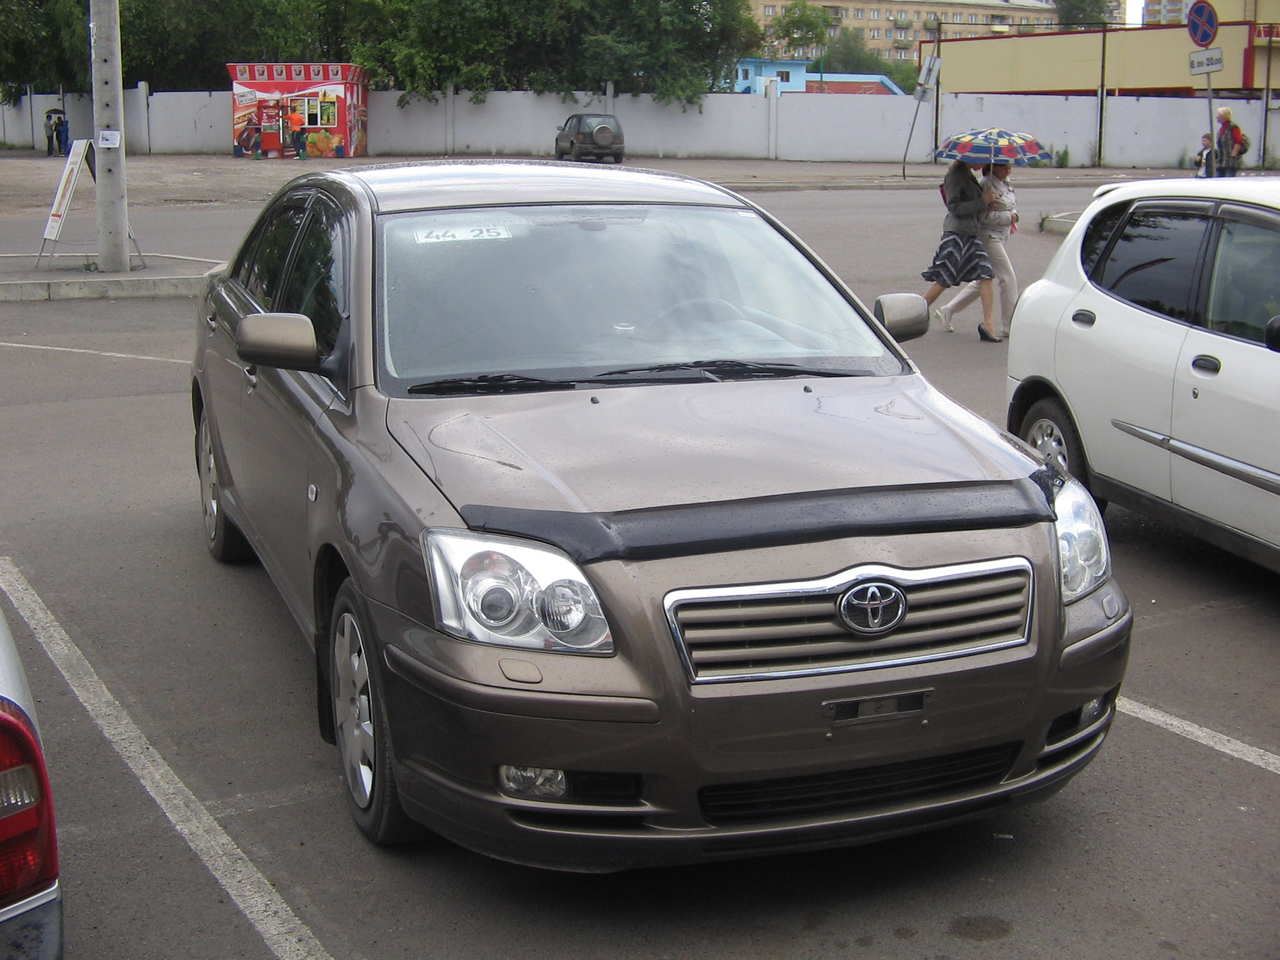 2006 toyota avensis photos 1 8 gasoline ff manual for sale. Black Bedroom Furniture Sets. Home Design Ideas